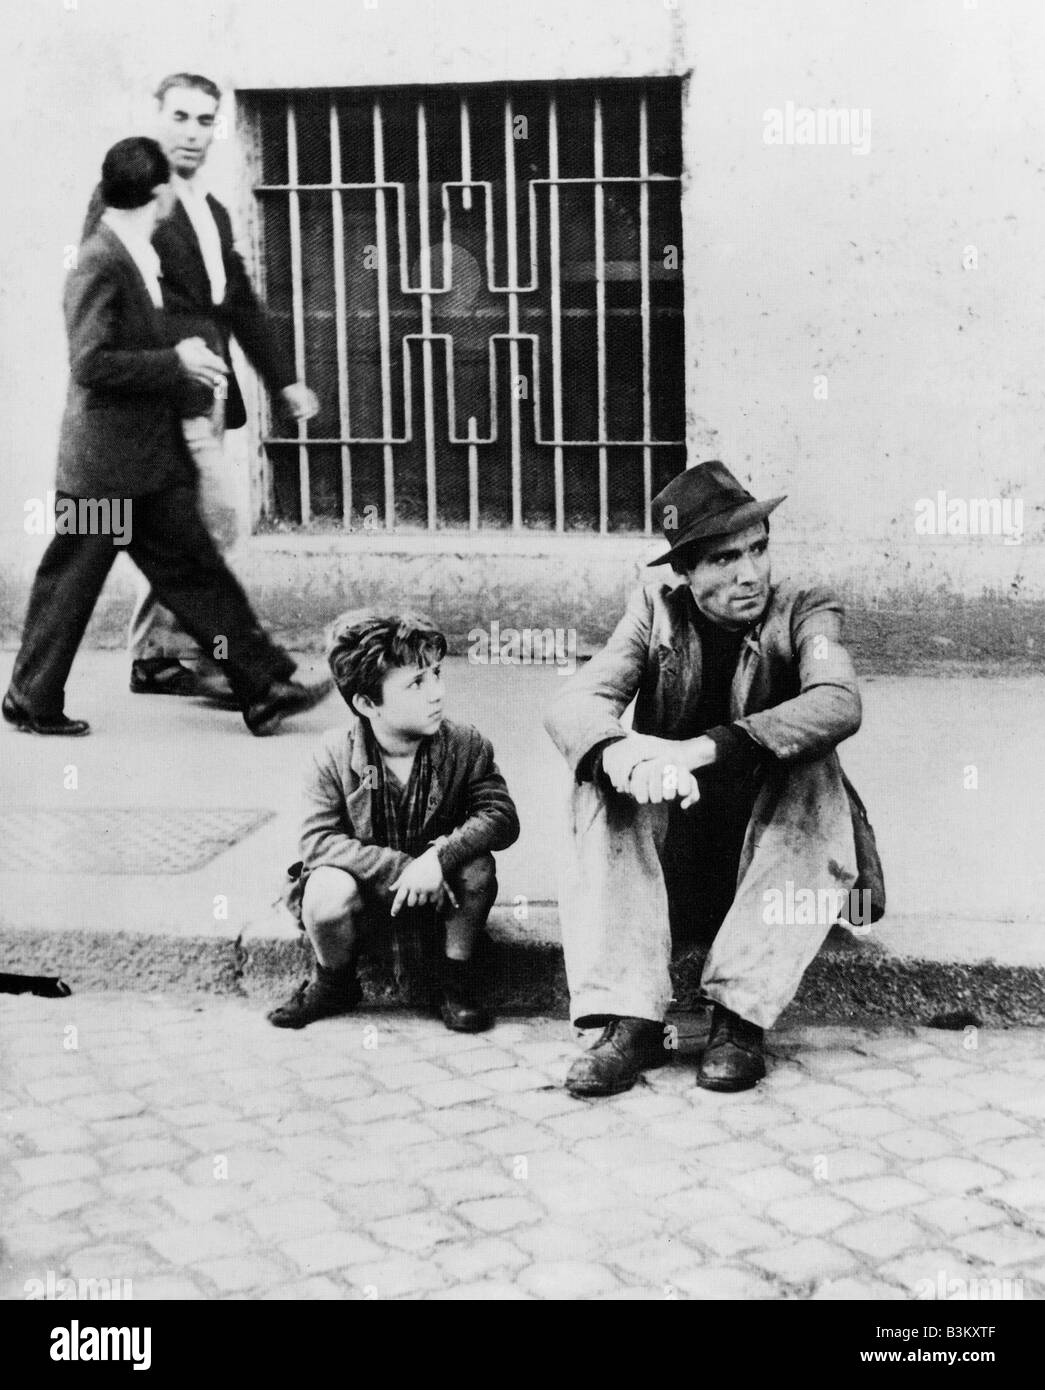 BICYCLE THIEVES 1948 PDS-ENIC film directed by Vittorio de Sica - Stock Image